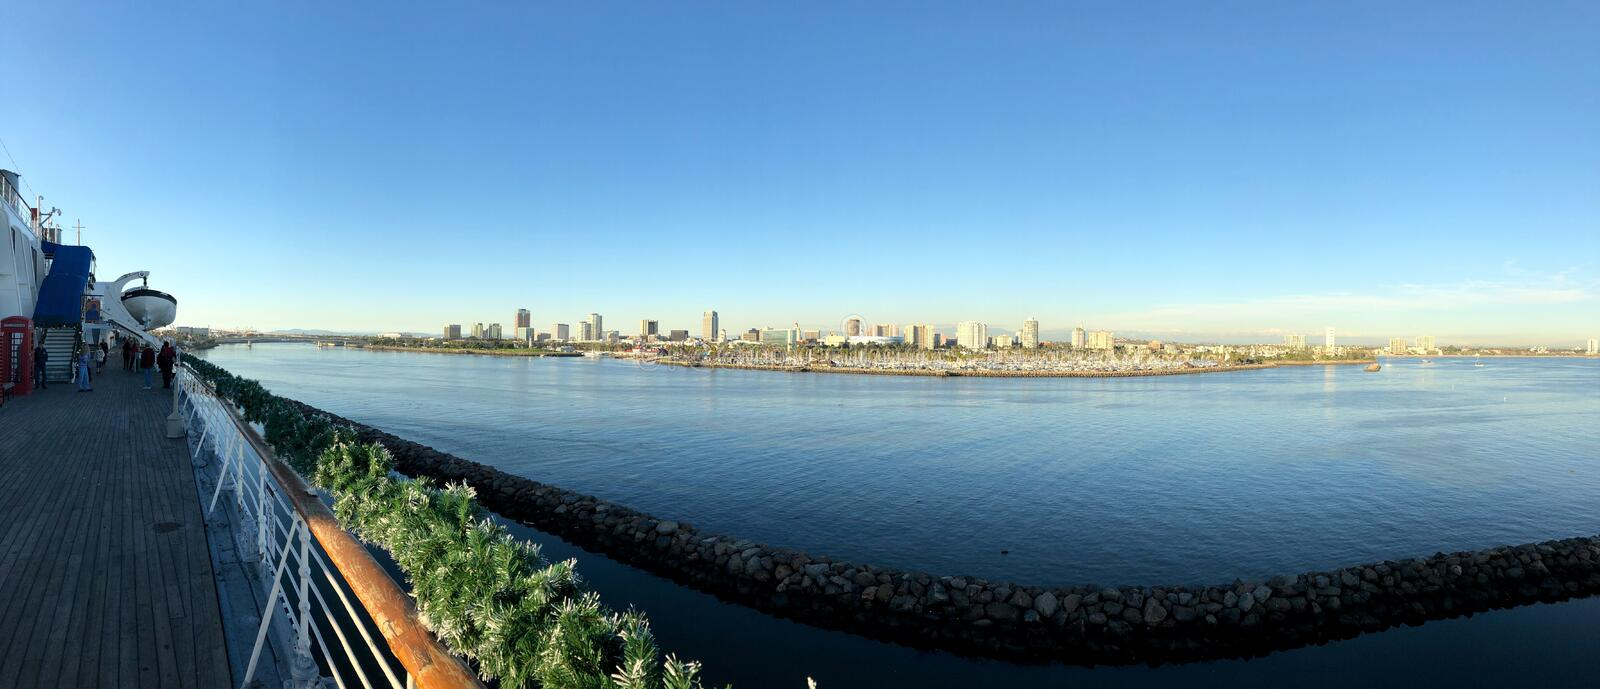 Long Beach City Panorama. Panorama view of Long Beach City buildings and ocean from the Queen Mary Boat in Los Angeles, California royalty free stock photography